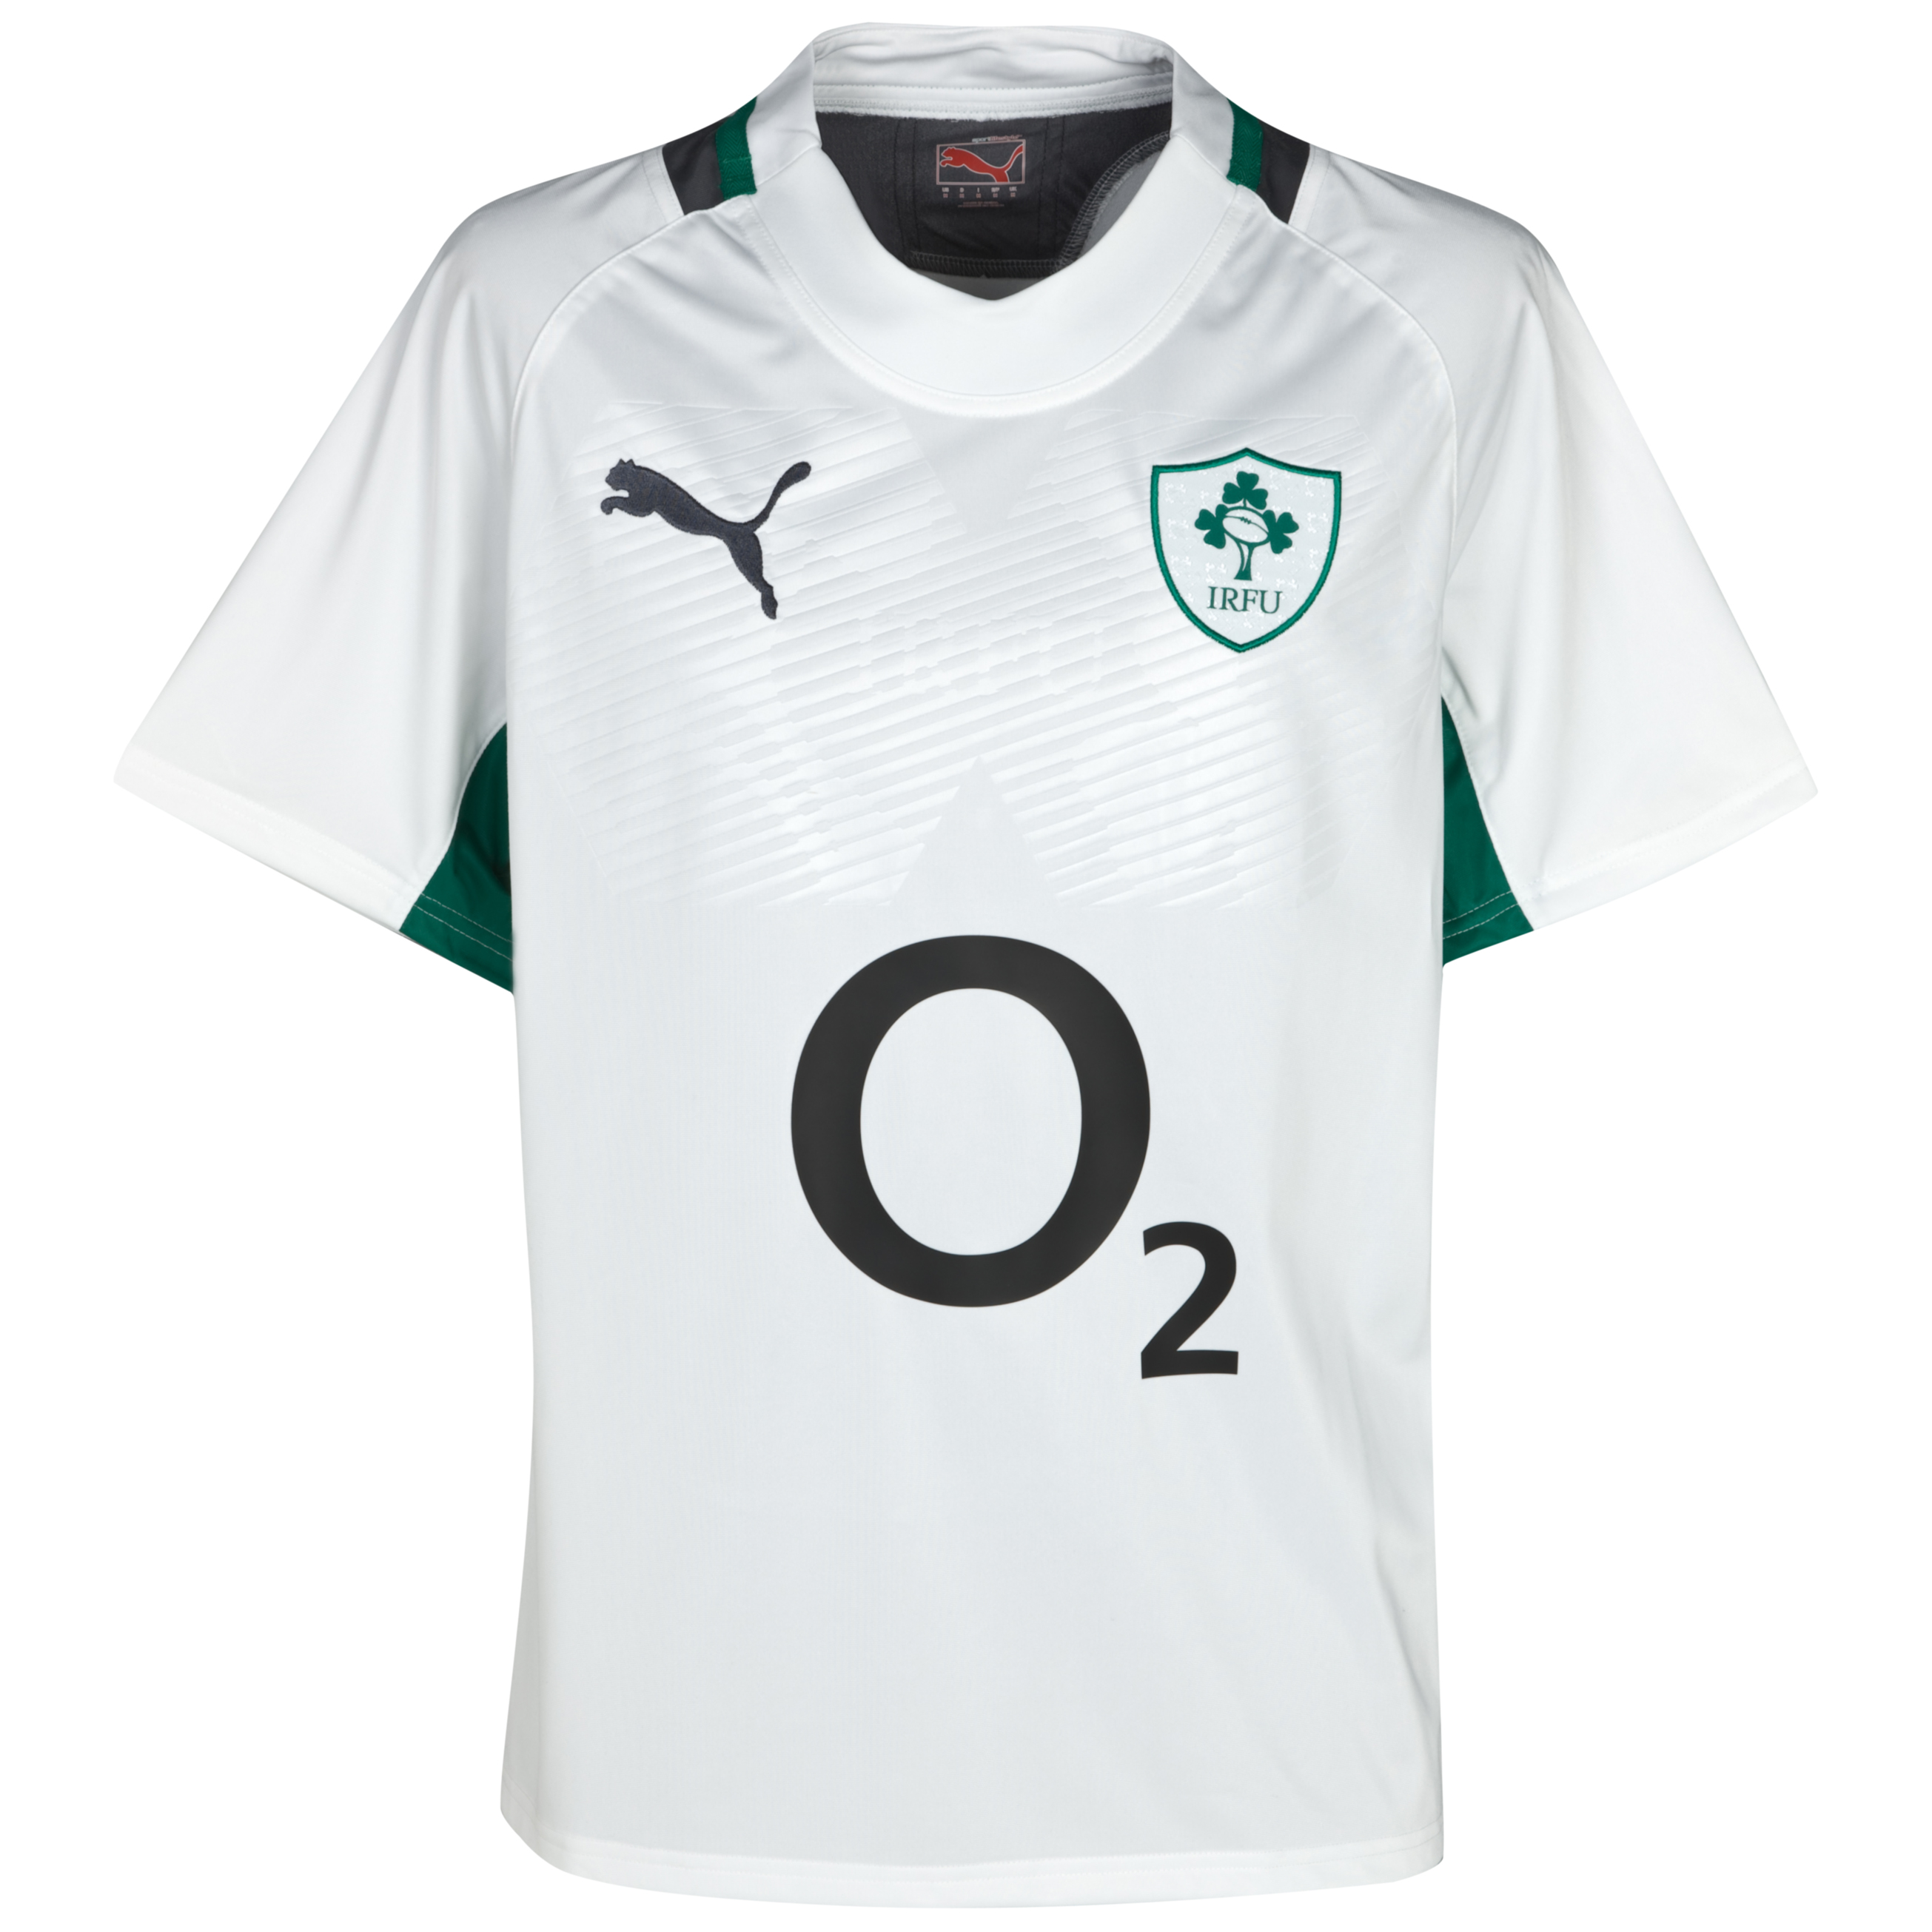 Ireland Rugby Alternative Shirt 2011/12